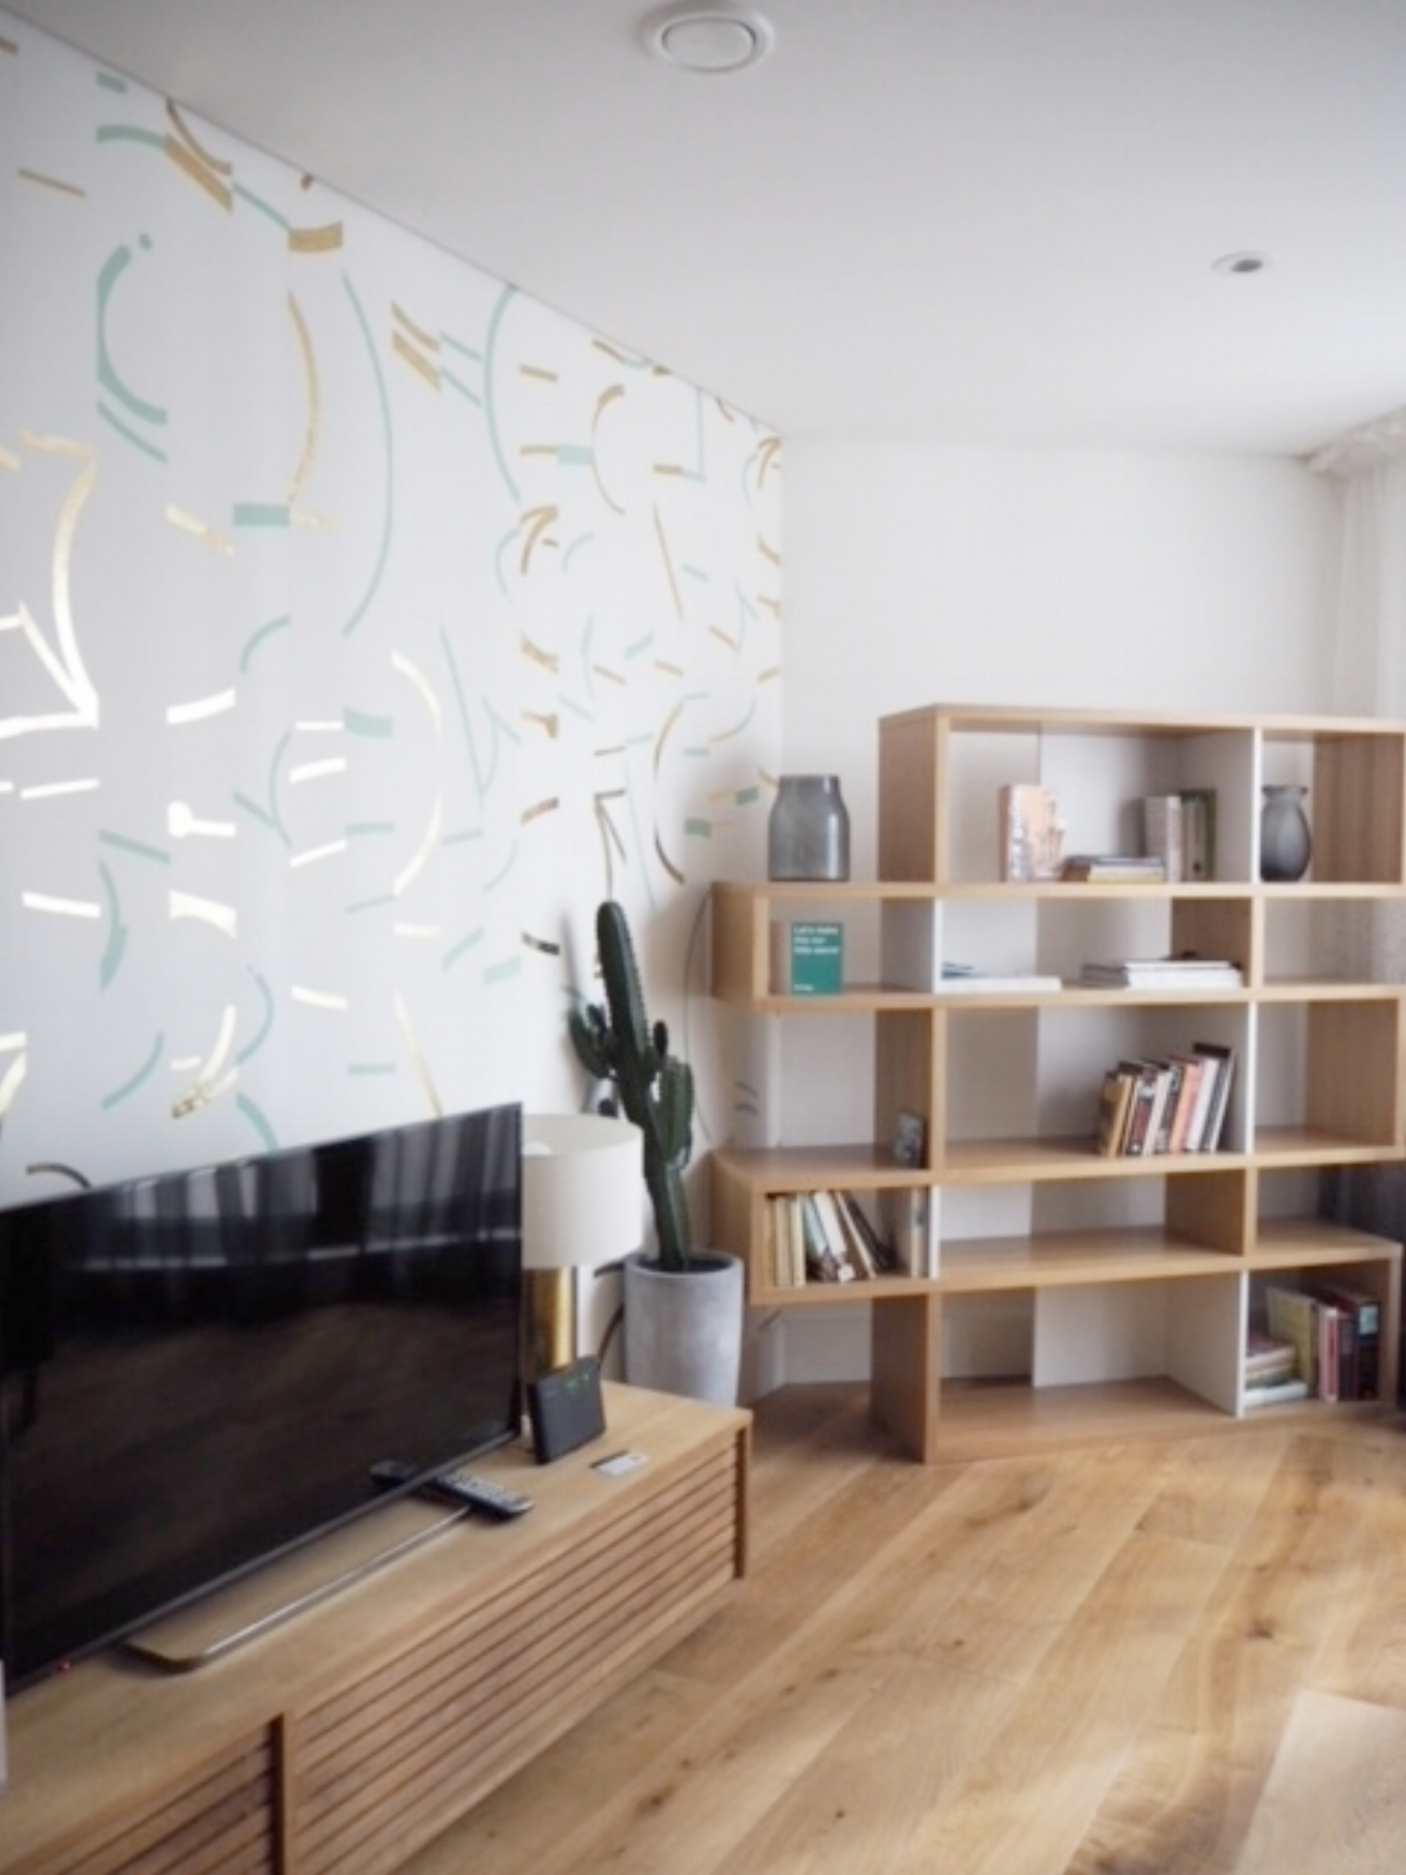 Fab living space designed by  2LG .